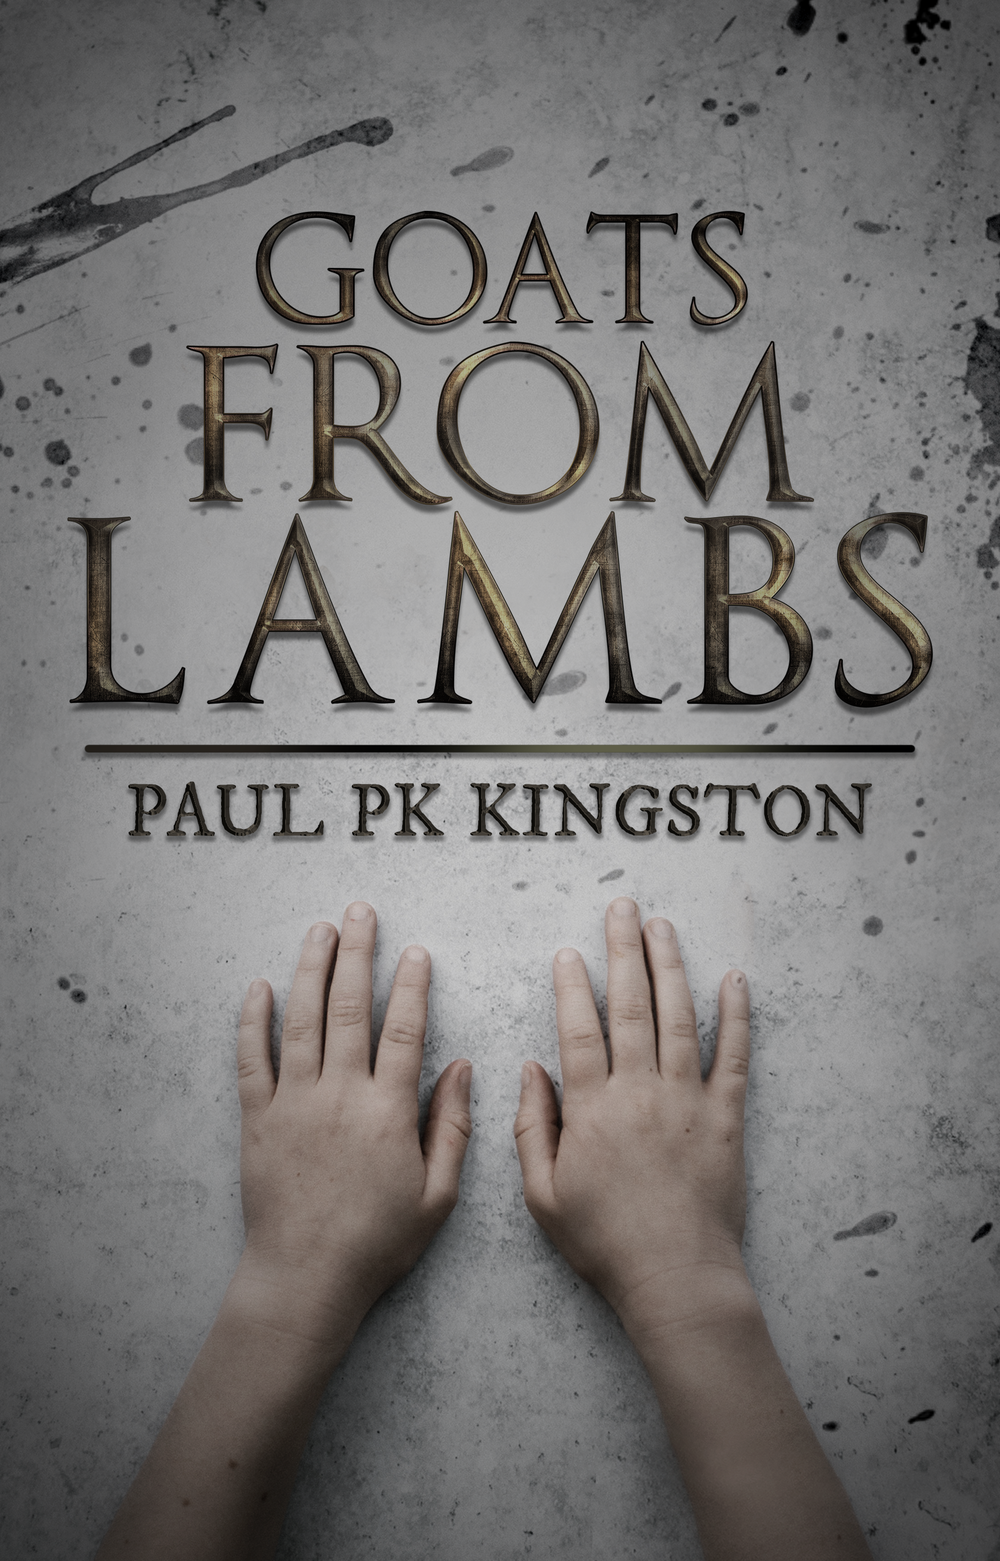 GoatFromLambsCover3 (1) (1).png